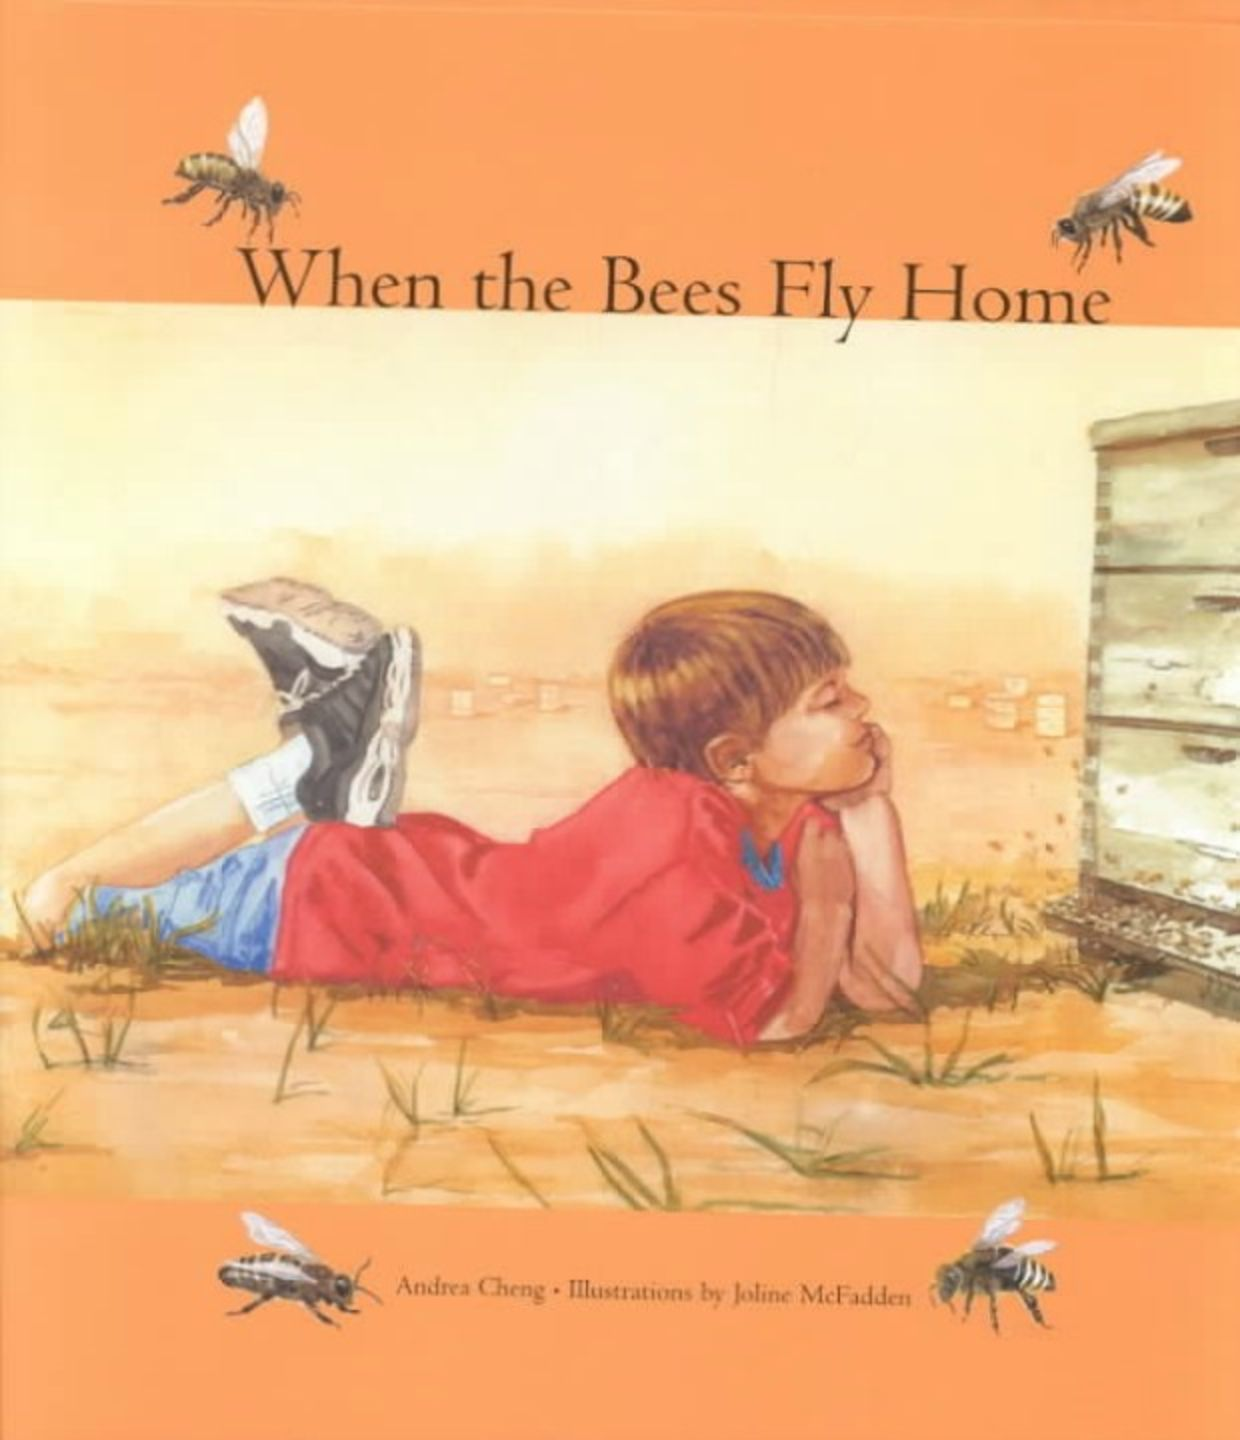 When the Bees Fly Home is a children's book that redefines gender roles